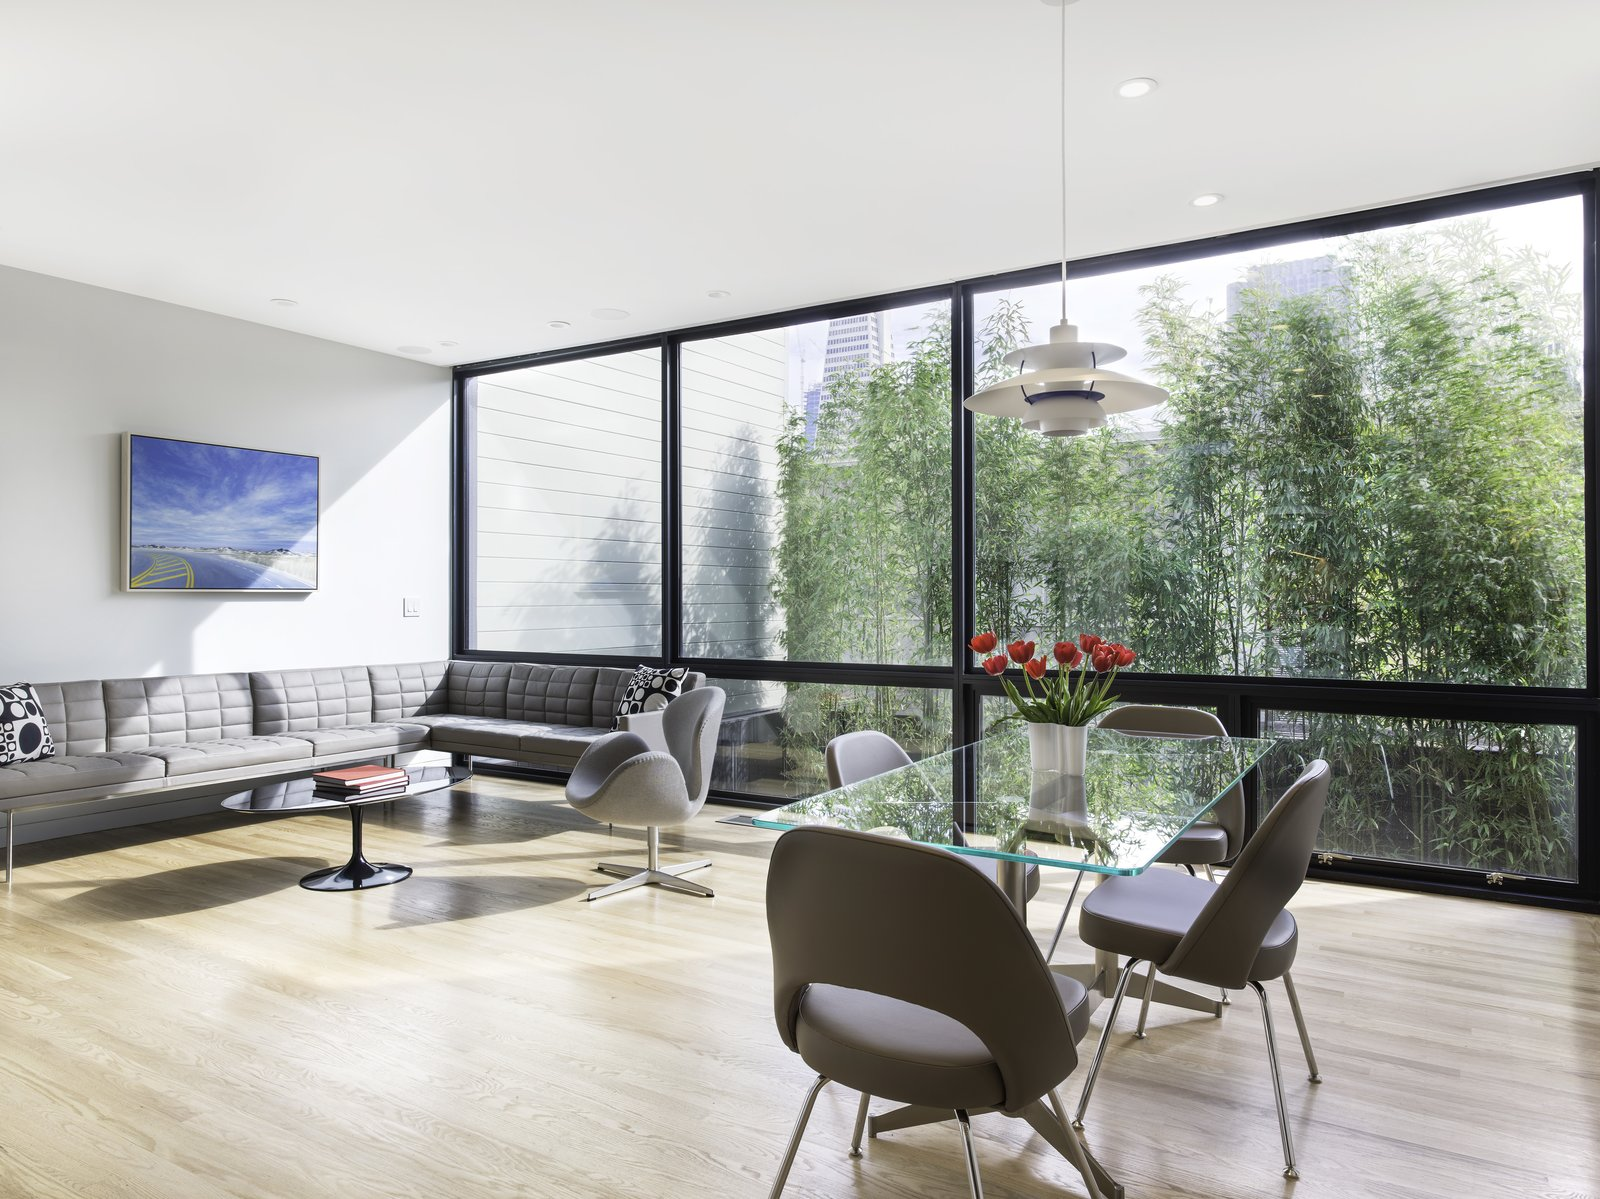 View of the Living-Dining Room with expanse of windows and bamboo hedge beyond for privacy.  Telegraph Hill Periscope by Samaha+Hart Architecture